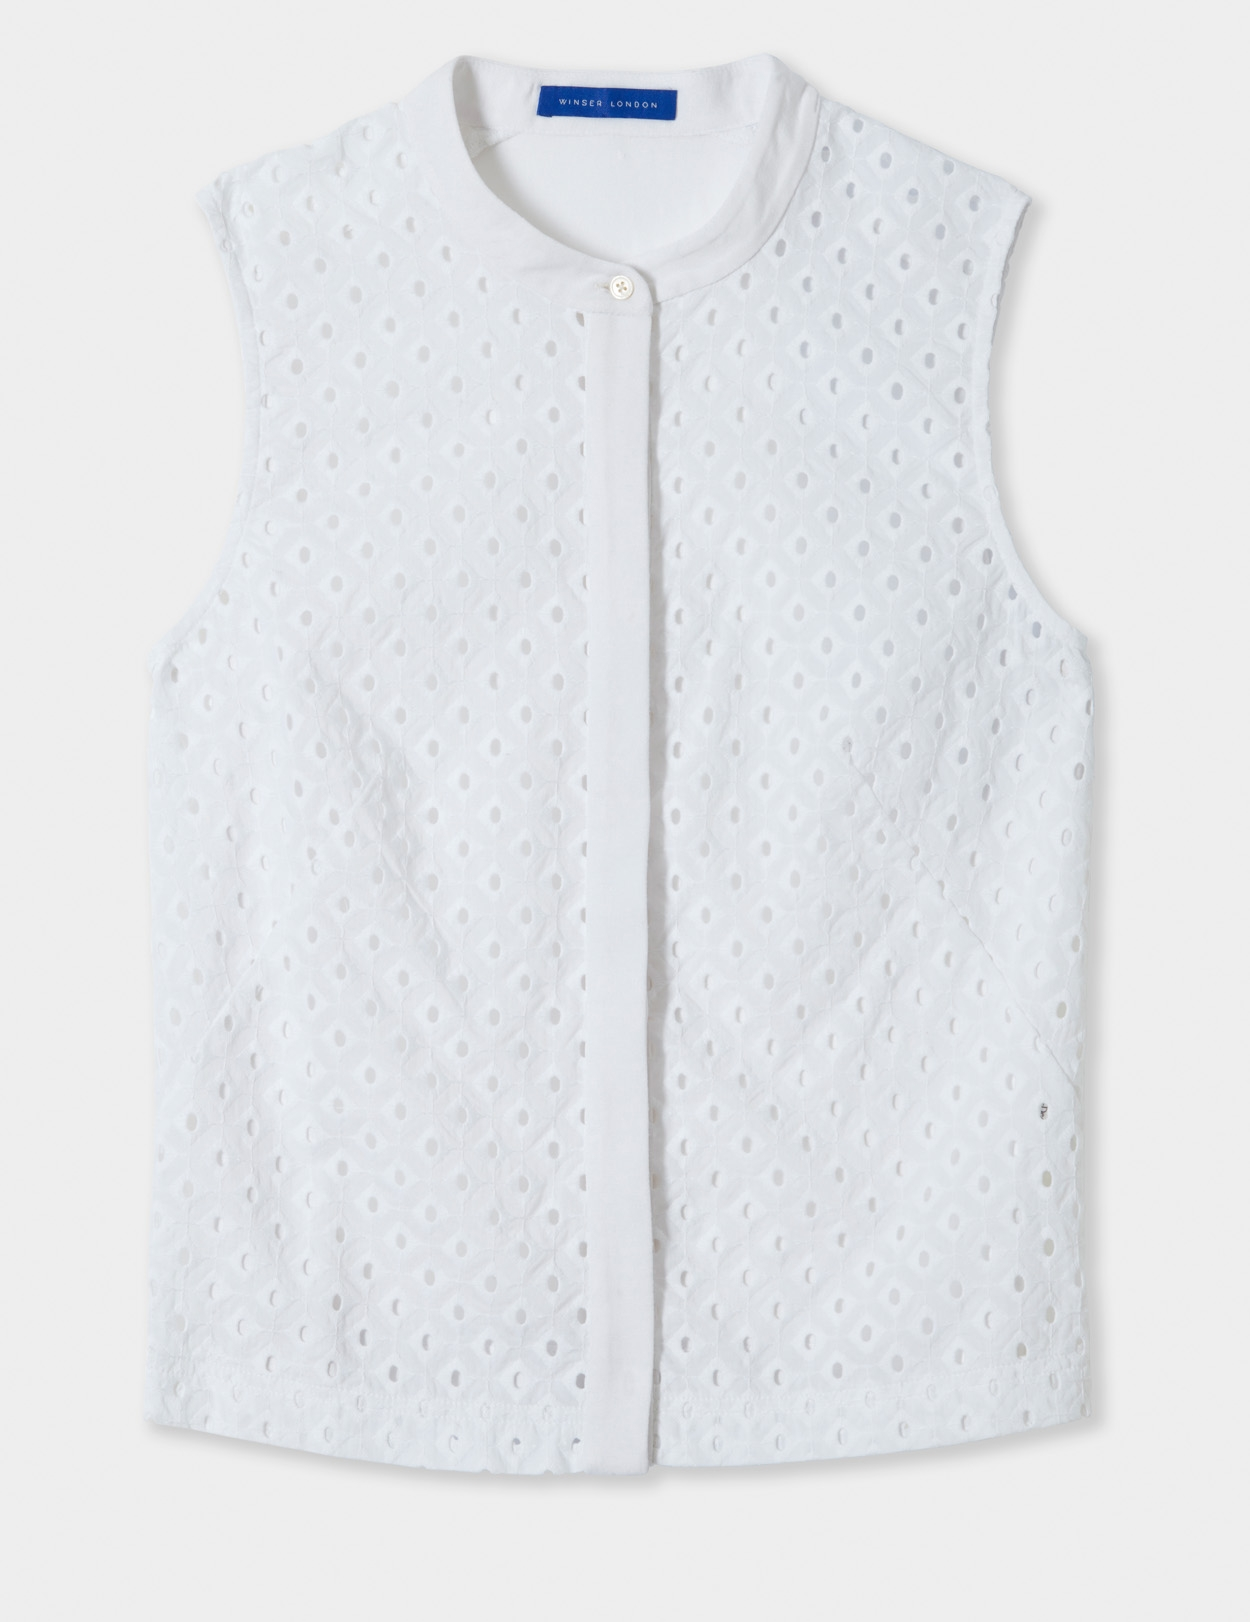 WINSER LONDON -SLEEVELESS BRODERIE ANGLAISE TOP IN WHITE - £89